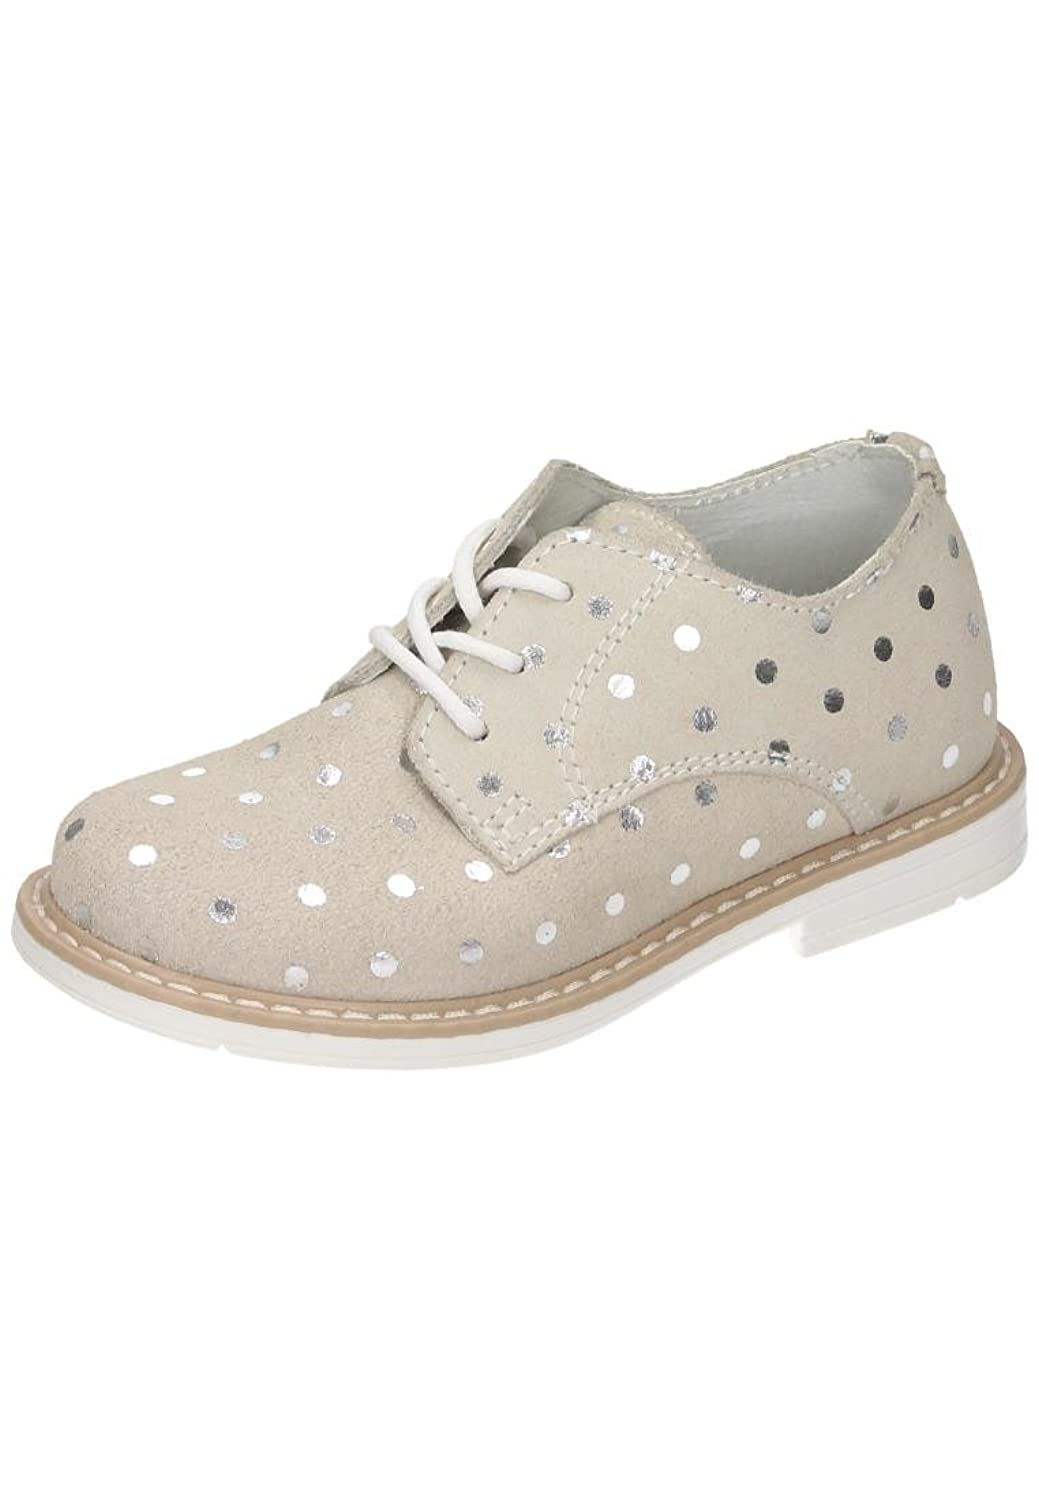 Prinzessin Lillifee Girls Lace-Up Beige 440058-8